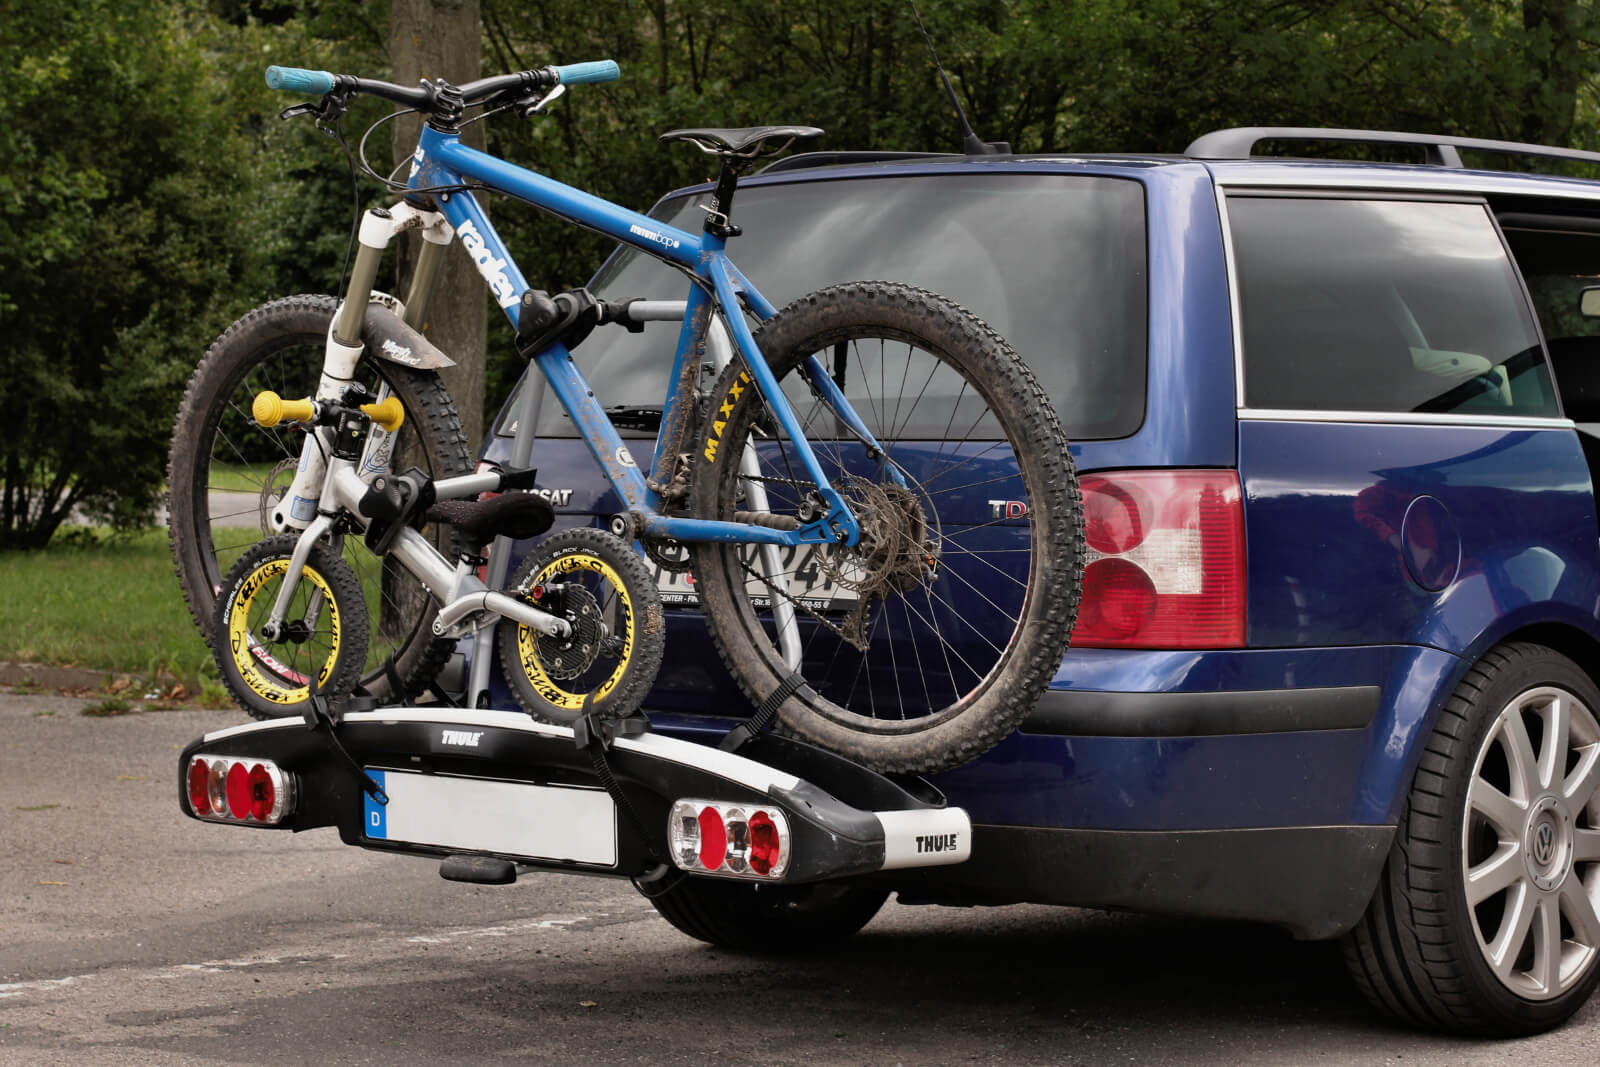 Connect 2 Bicycles to your car Bike Carrier MaxxHaul 2-Bike Hitch Mount Rack